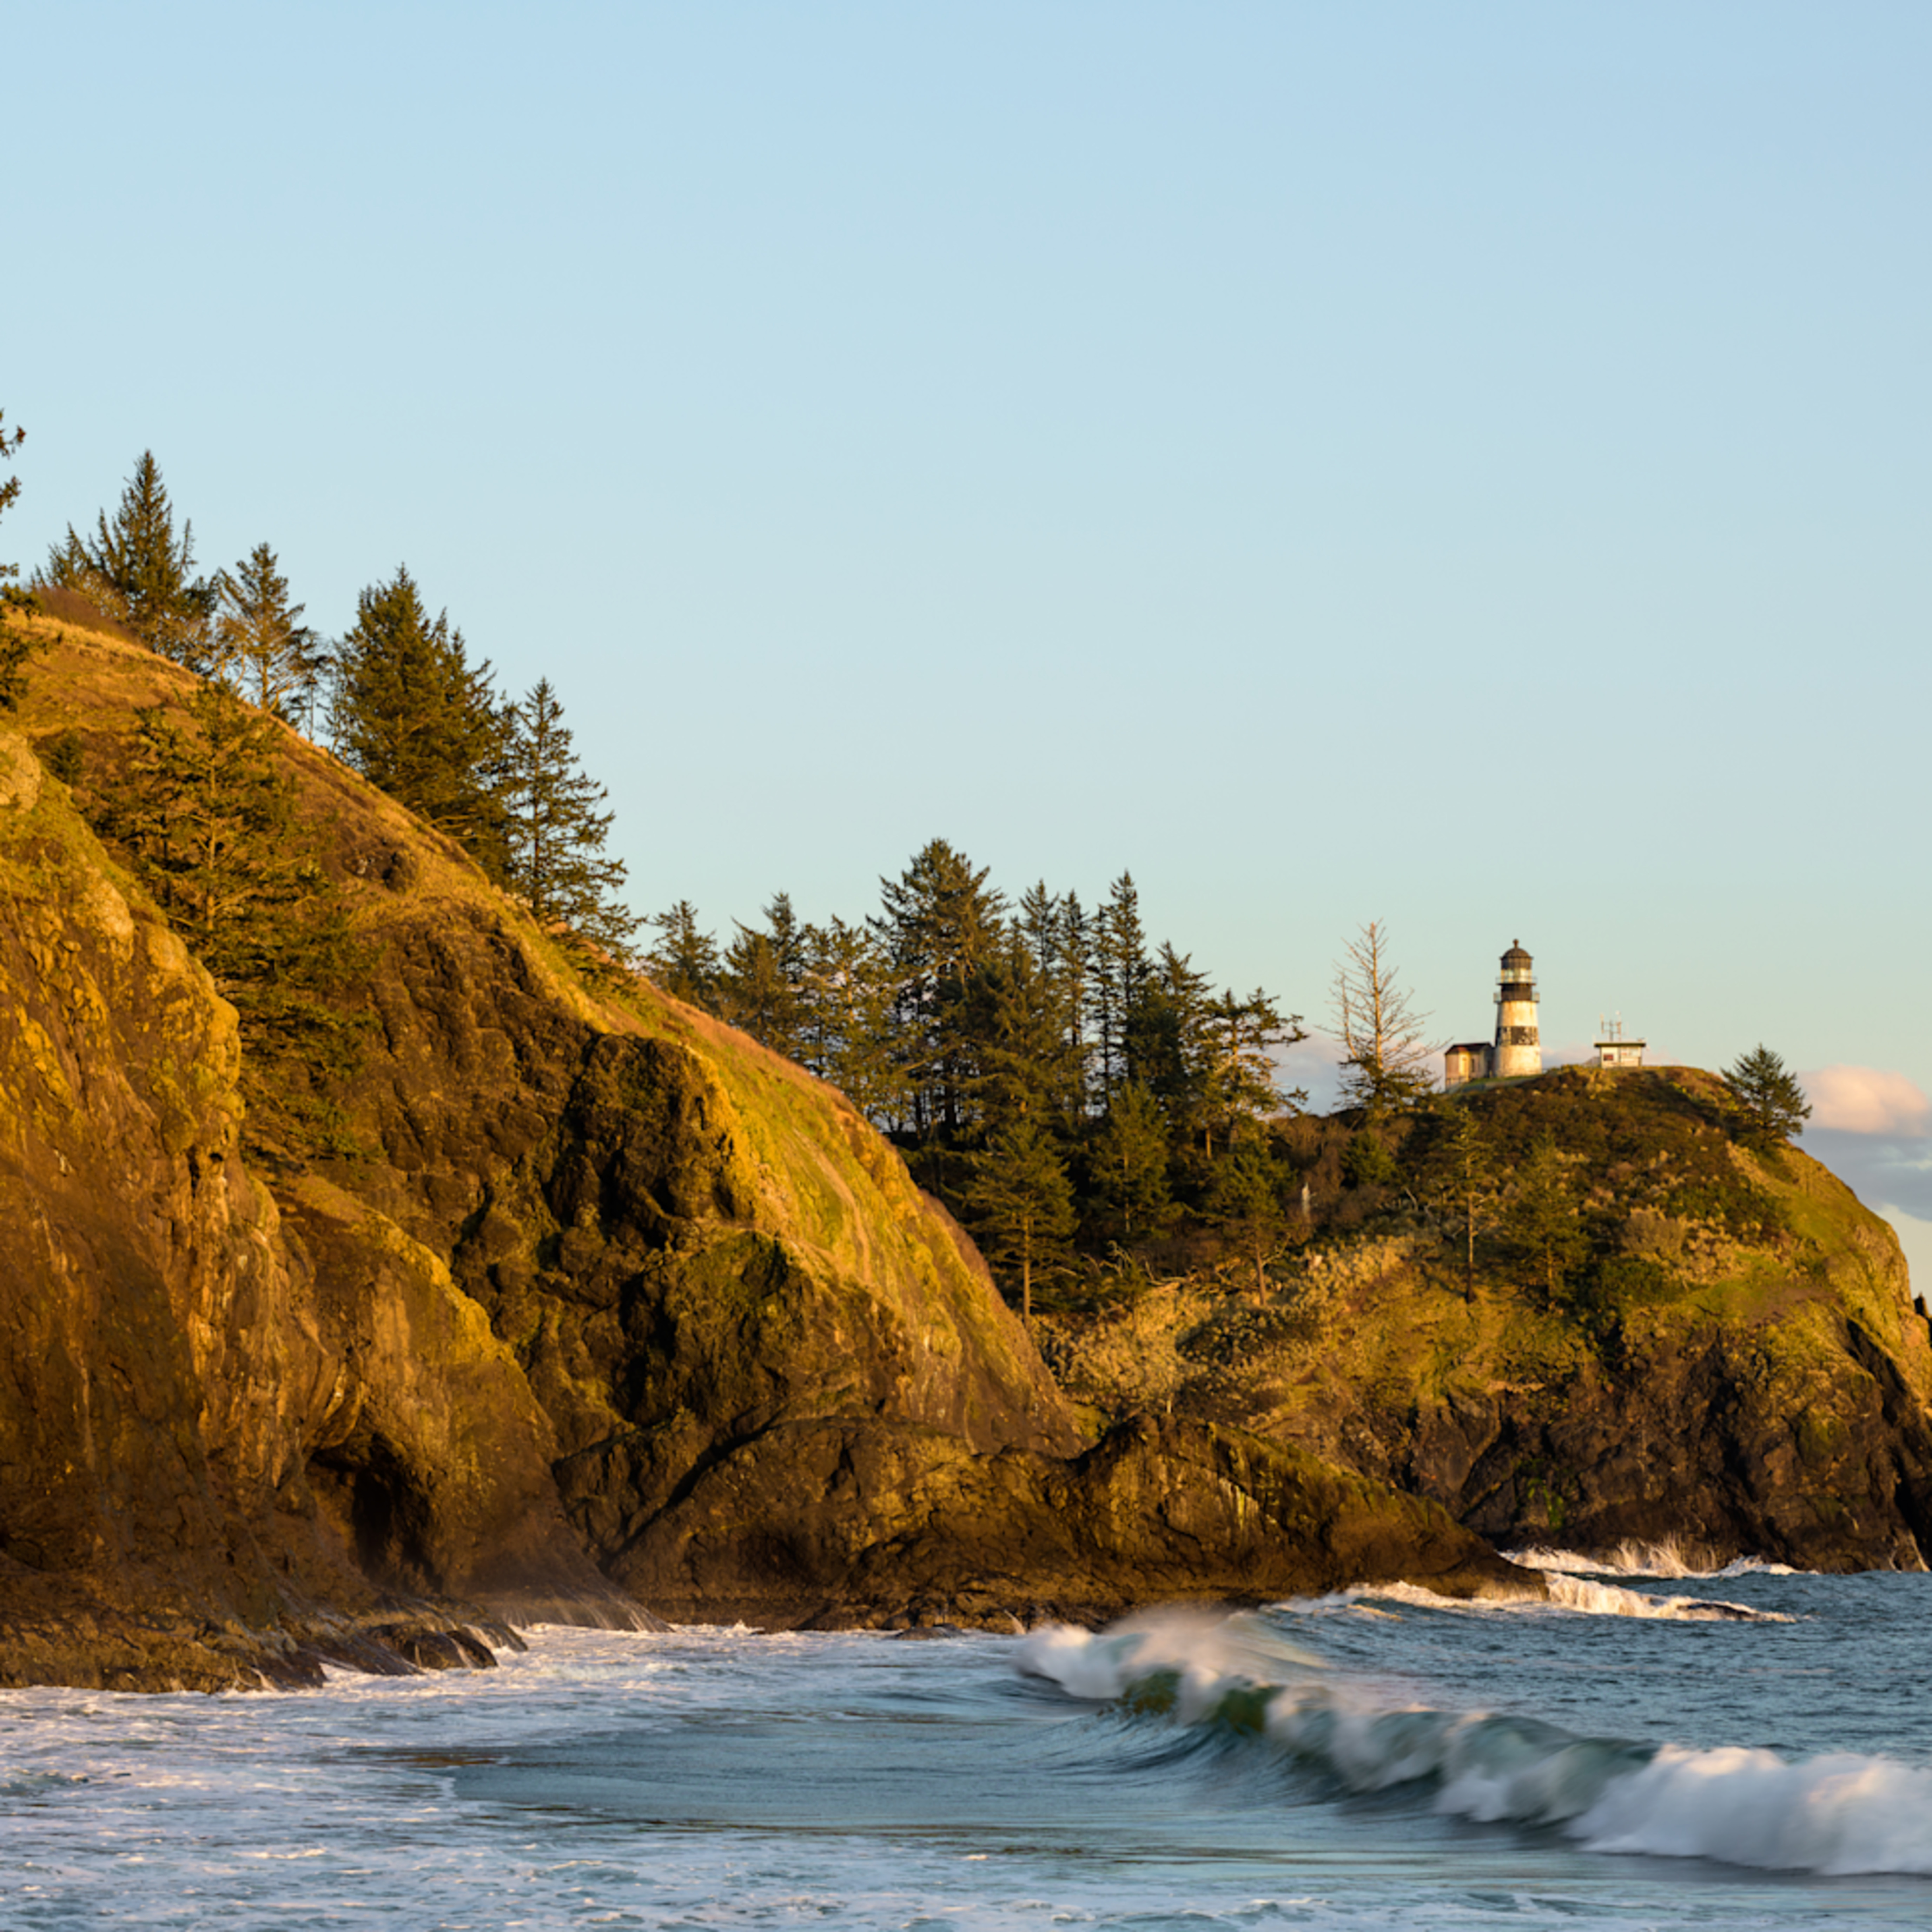 Late winter evening cape disappointment lighthouse washington 2021 cg1elv